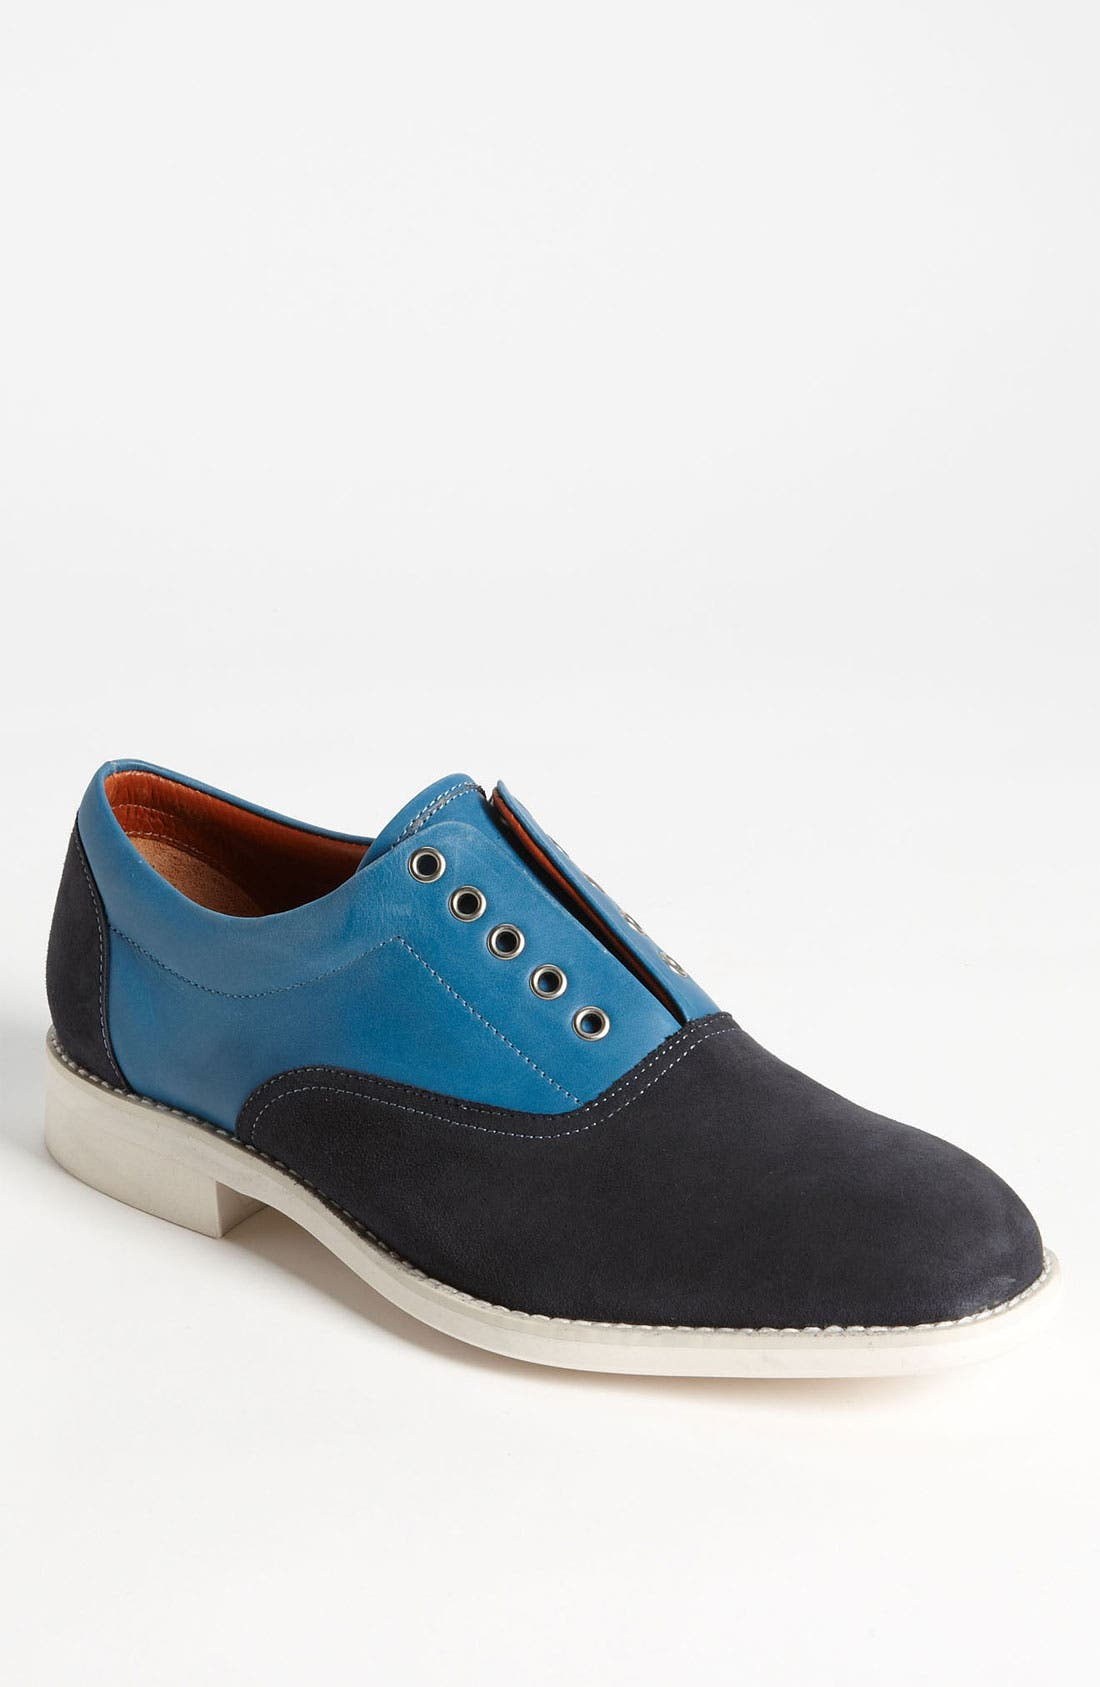 Alternate Image 1 Selected - Florsheim by Duckie Brown Laceless Oxford